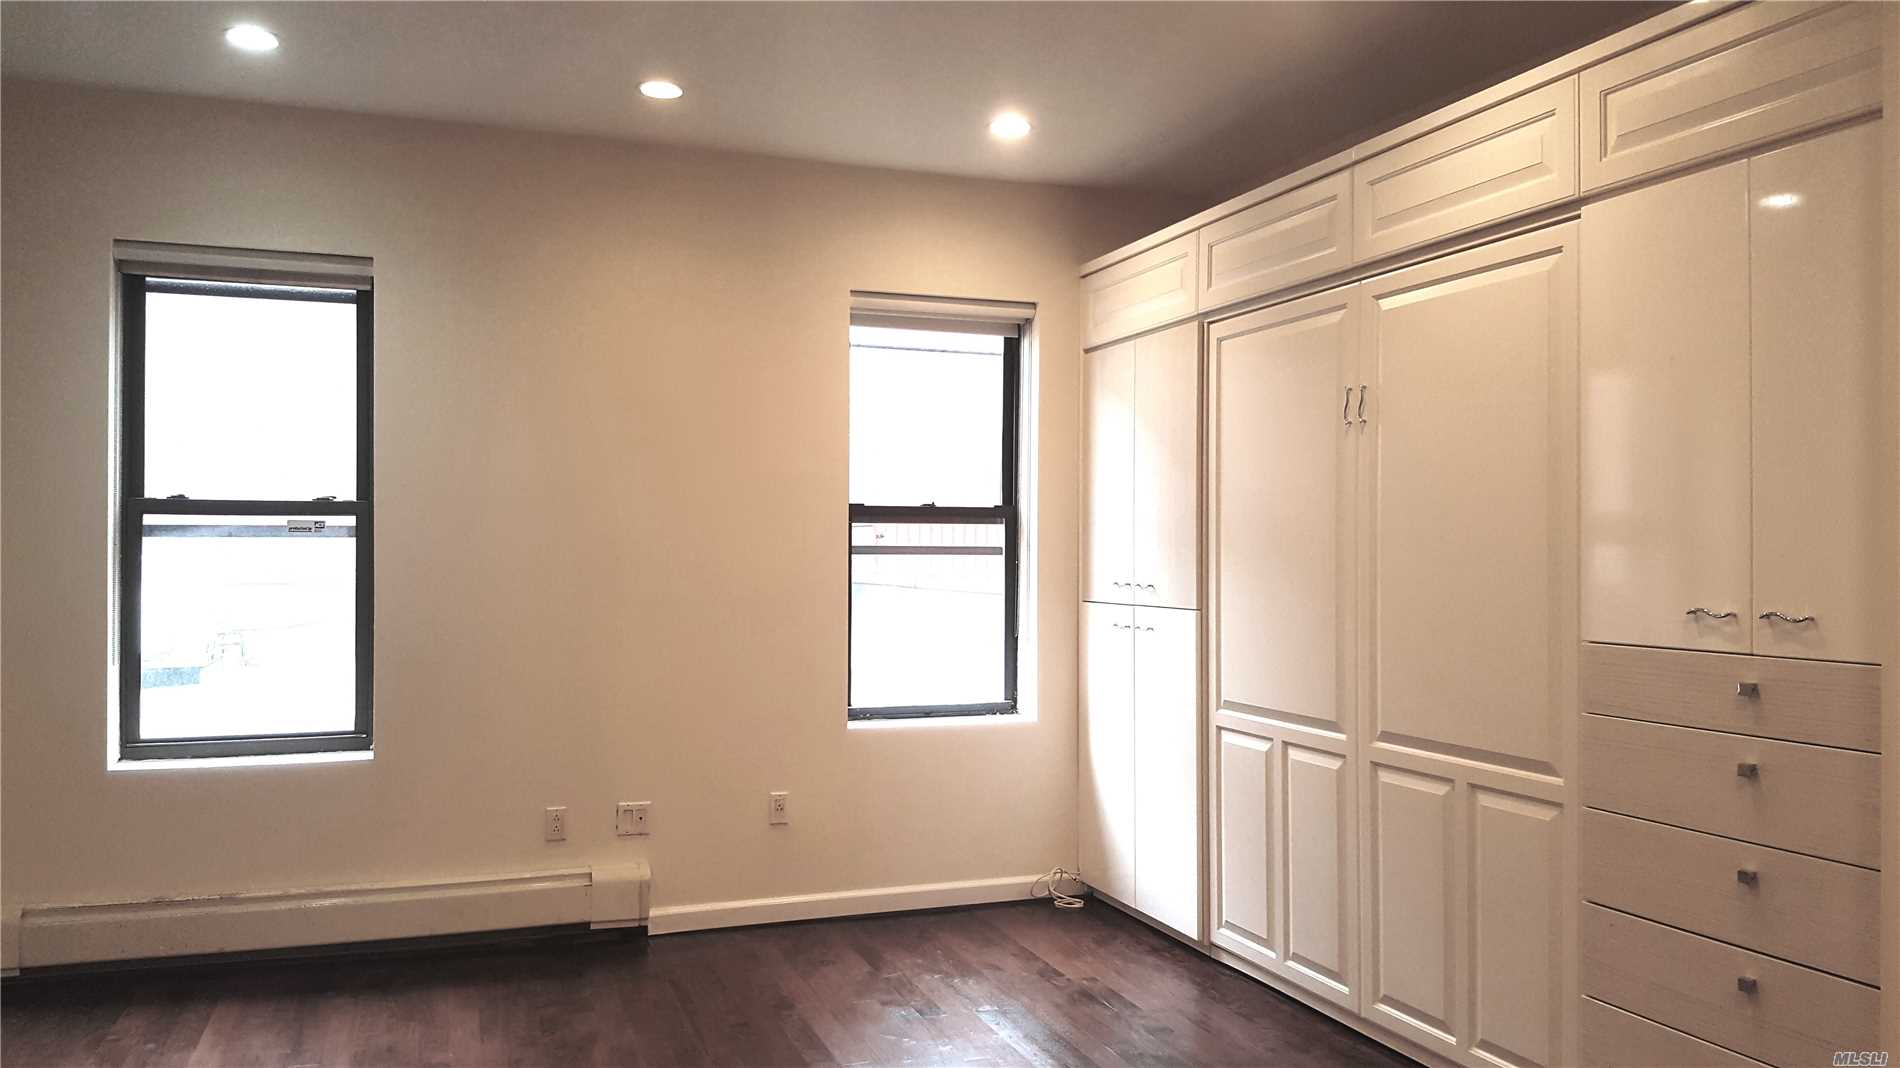 Live In The Heart Of Forest Hills! This Apartment Is All About Luxury And Location. Located 1 Block From The E/F Express (71st/Continental), This Beautifully Updated Apartment Has An In-Unit Washer/Dryer, A Full Wall Of Custom Cabinets Including A Queen-Sized Murphy Bed, Recessed Lighting, Stainless Steel Appliances And A Jacuzzi Bath. A Must See That's Close To All!